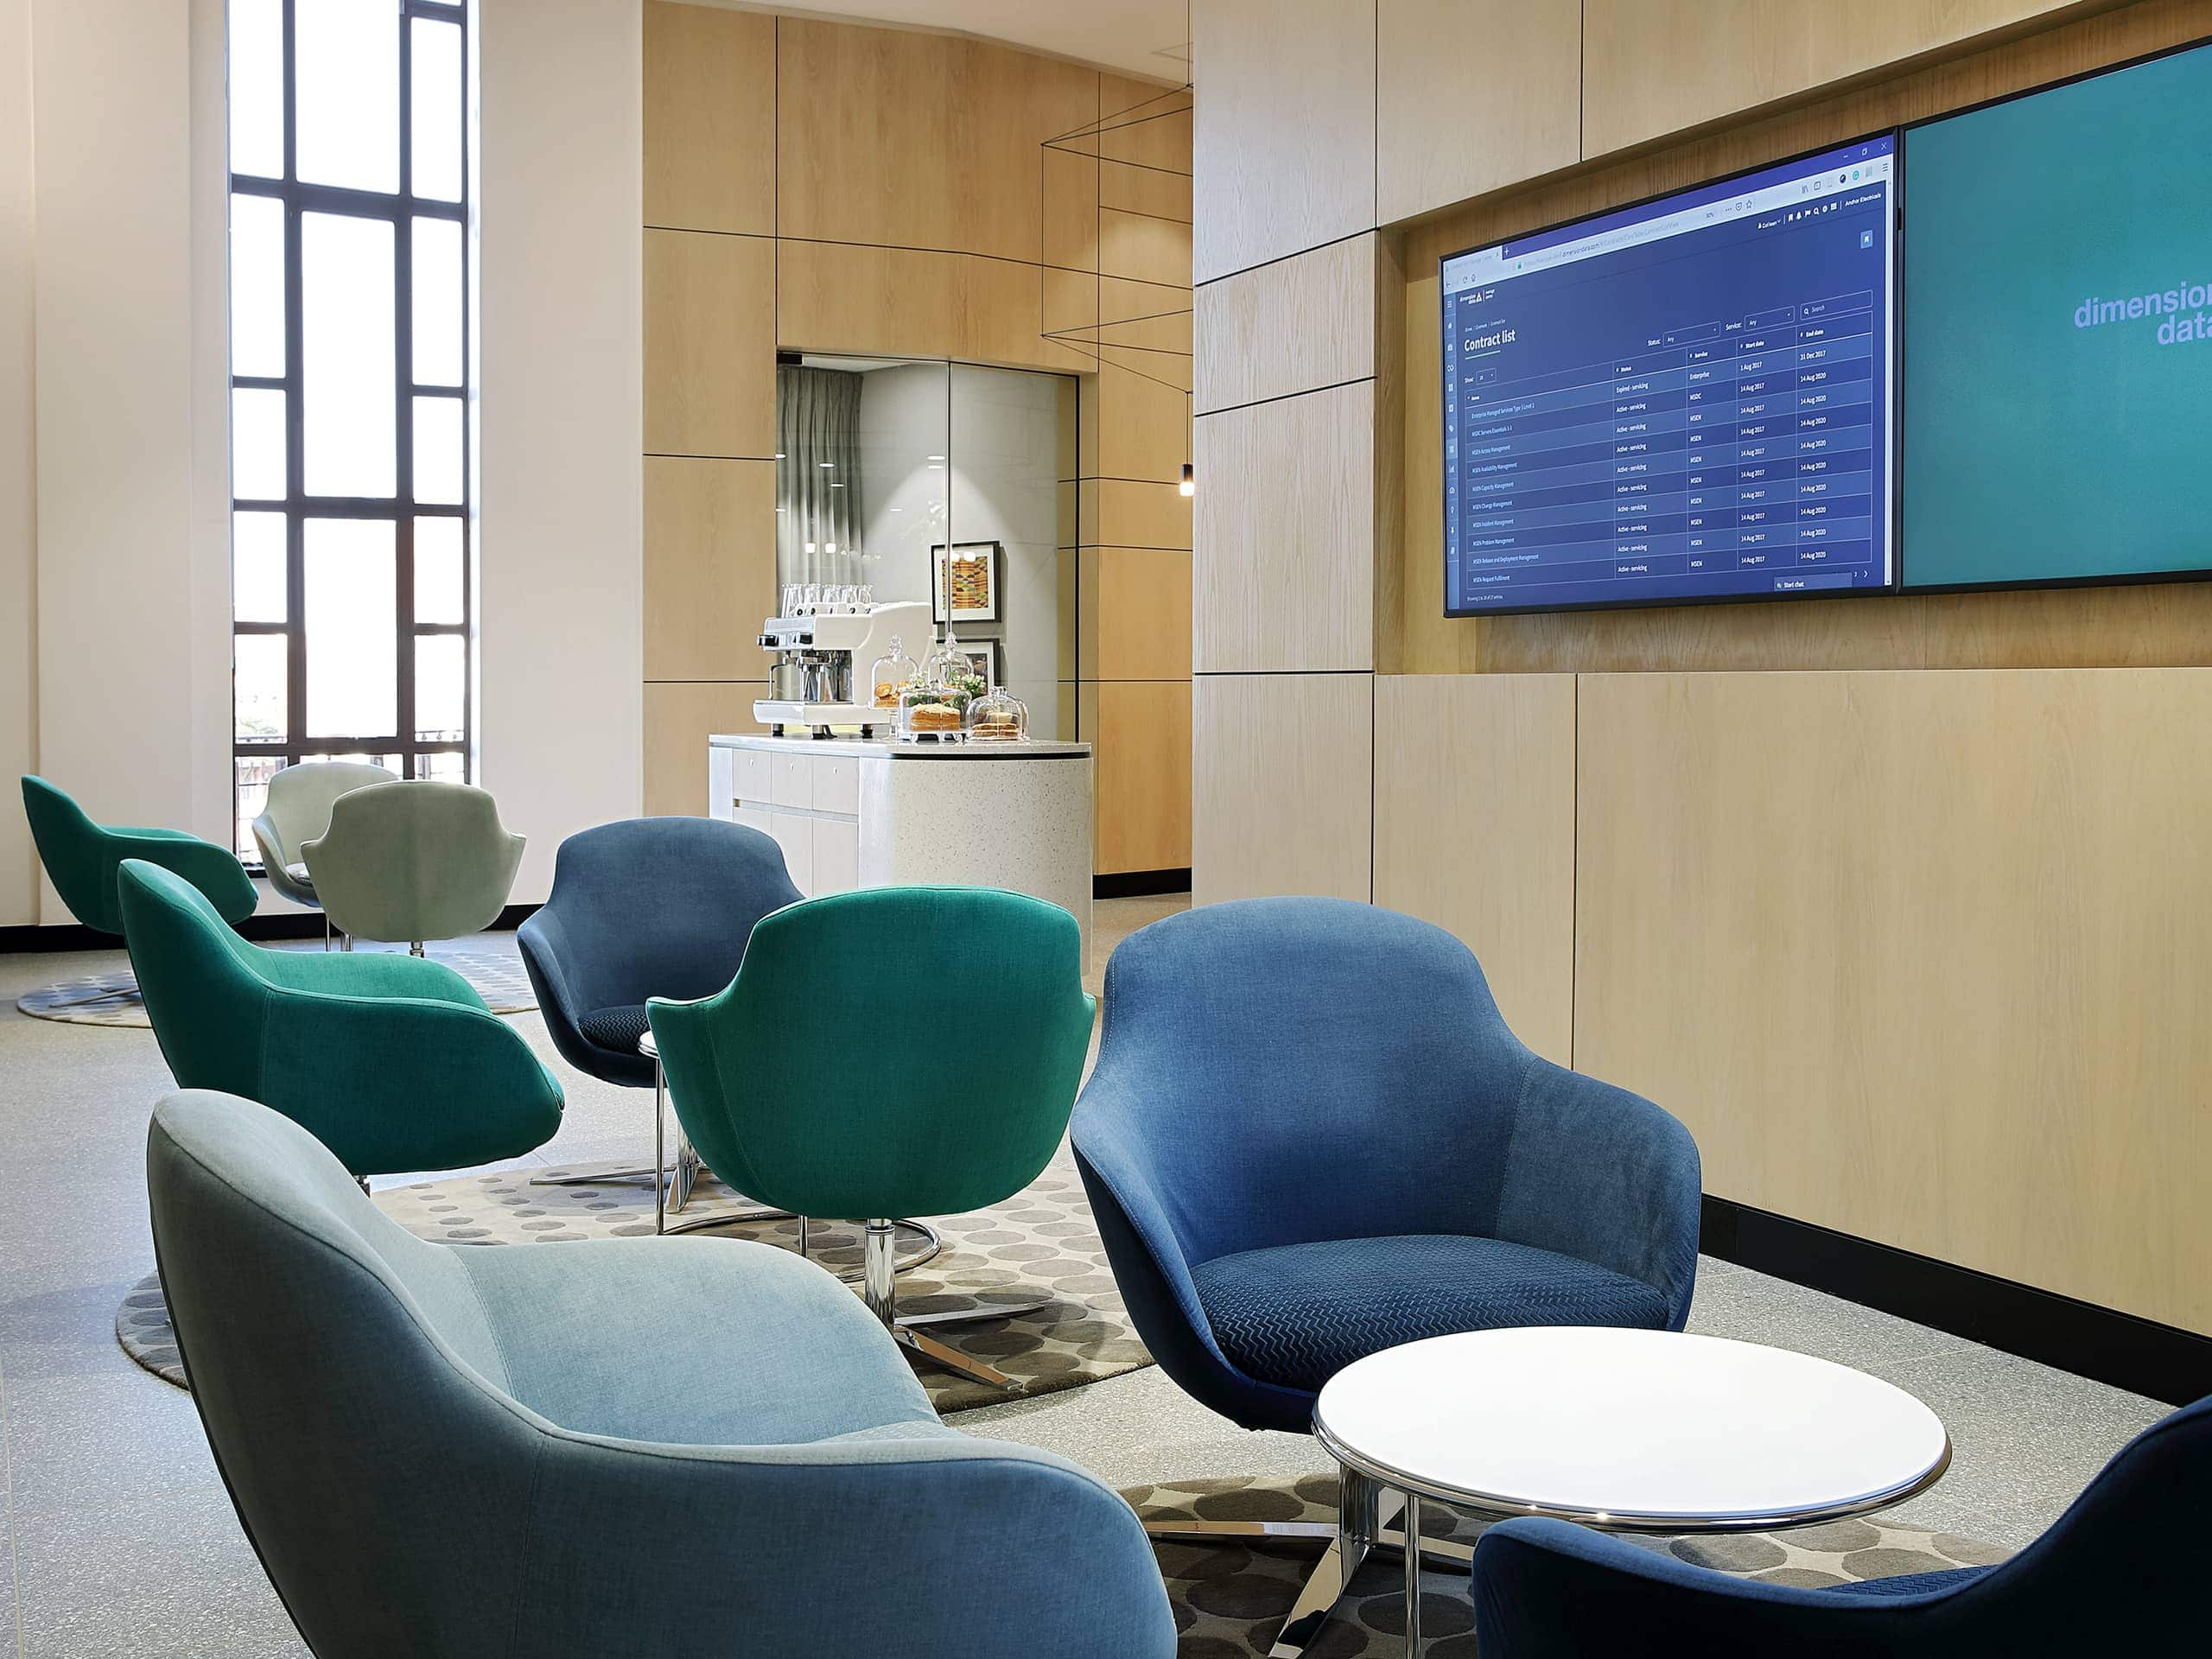 Modern airport members' lounge with comfortable armchairs and food station. Elsa Young Photography.